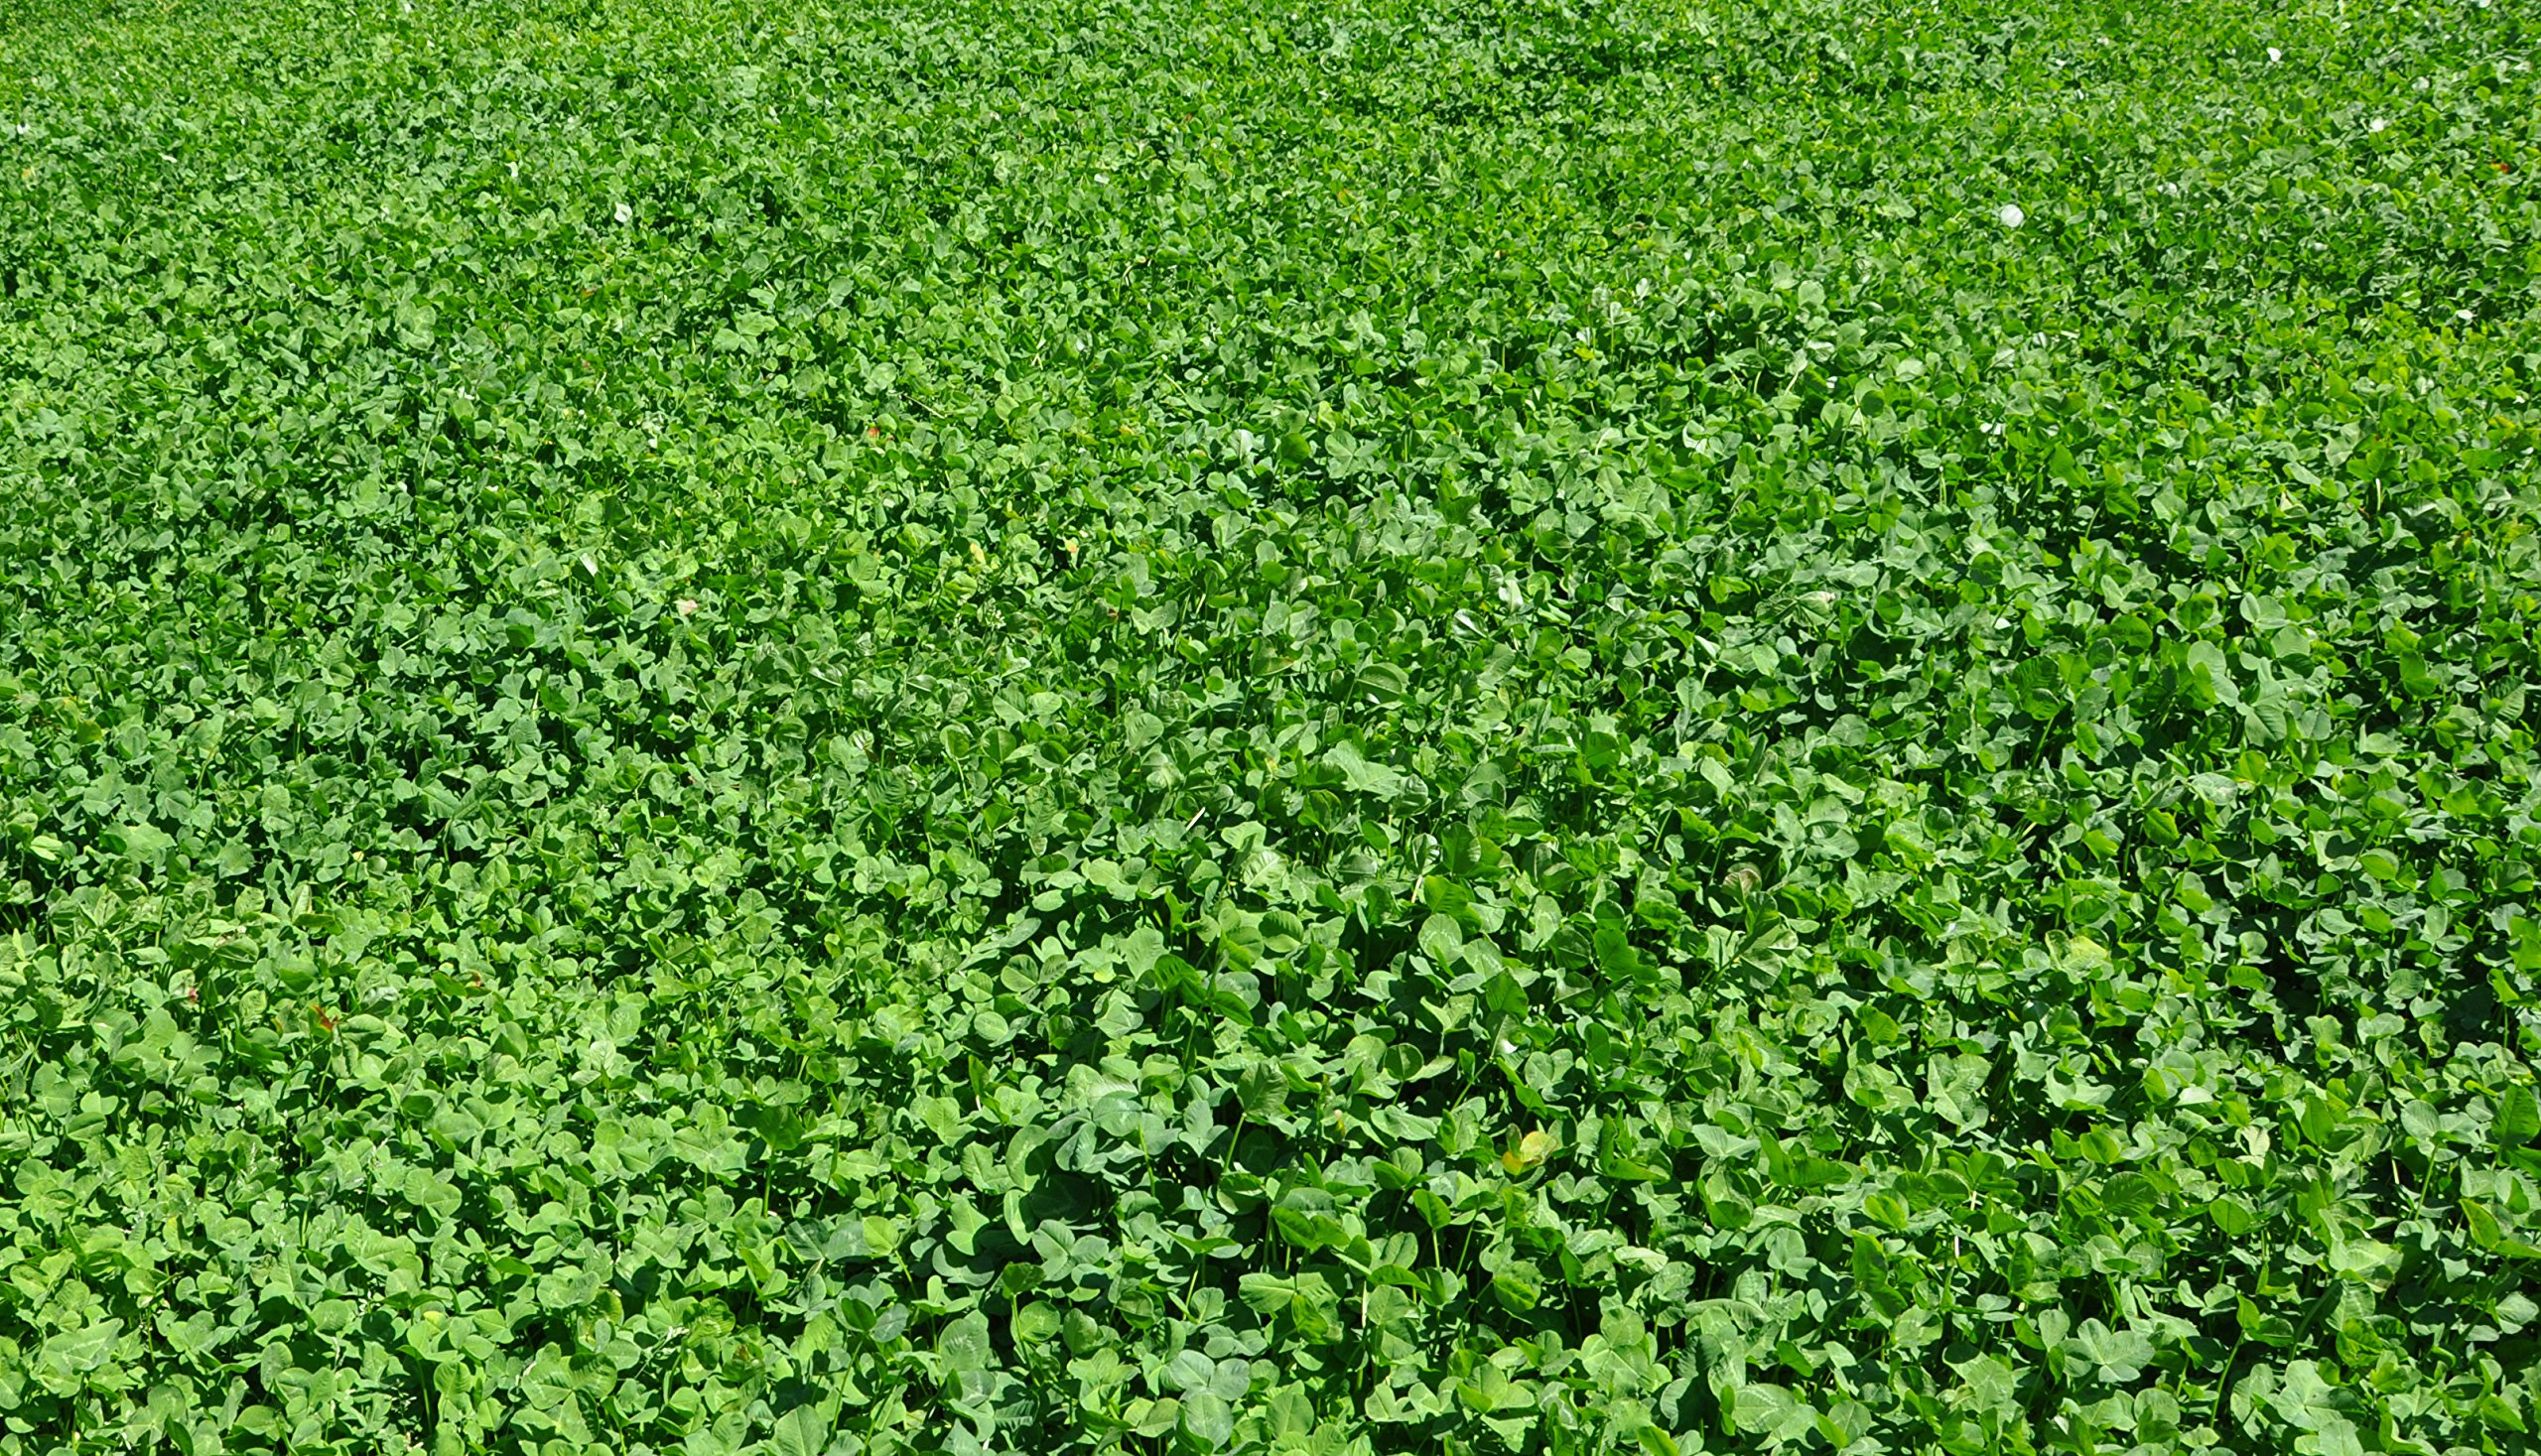 Whitetail Institute Imperial Clover Food Plot Seed (Spring and Fall Planting), 4-Pound (1/2 Acre) by Whitetail Institute (Image #5)